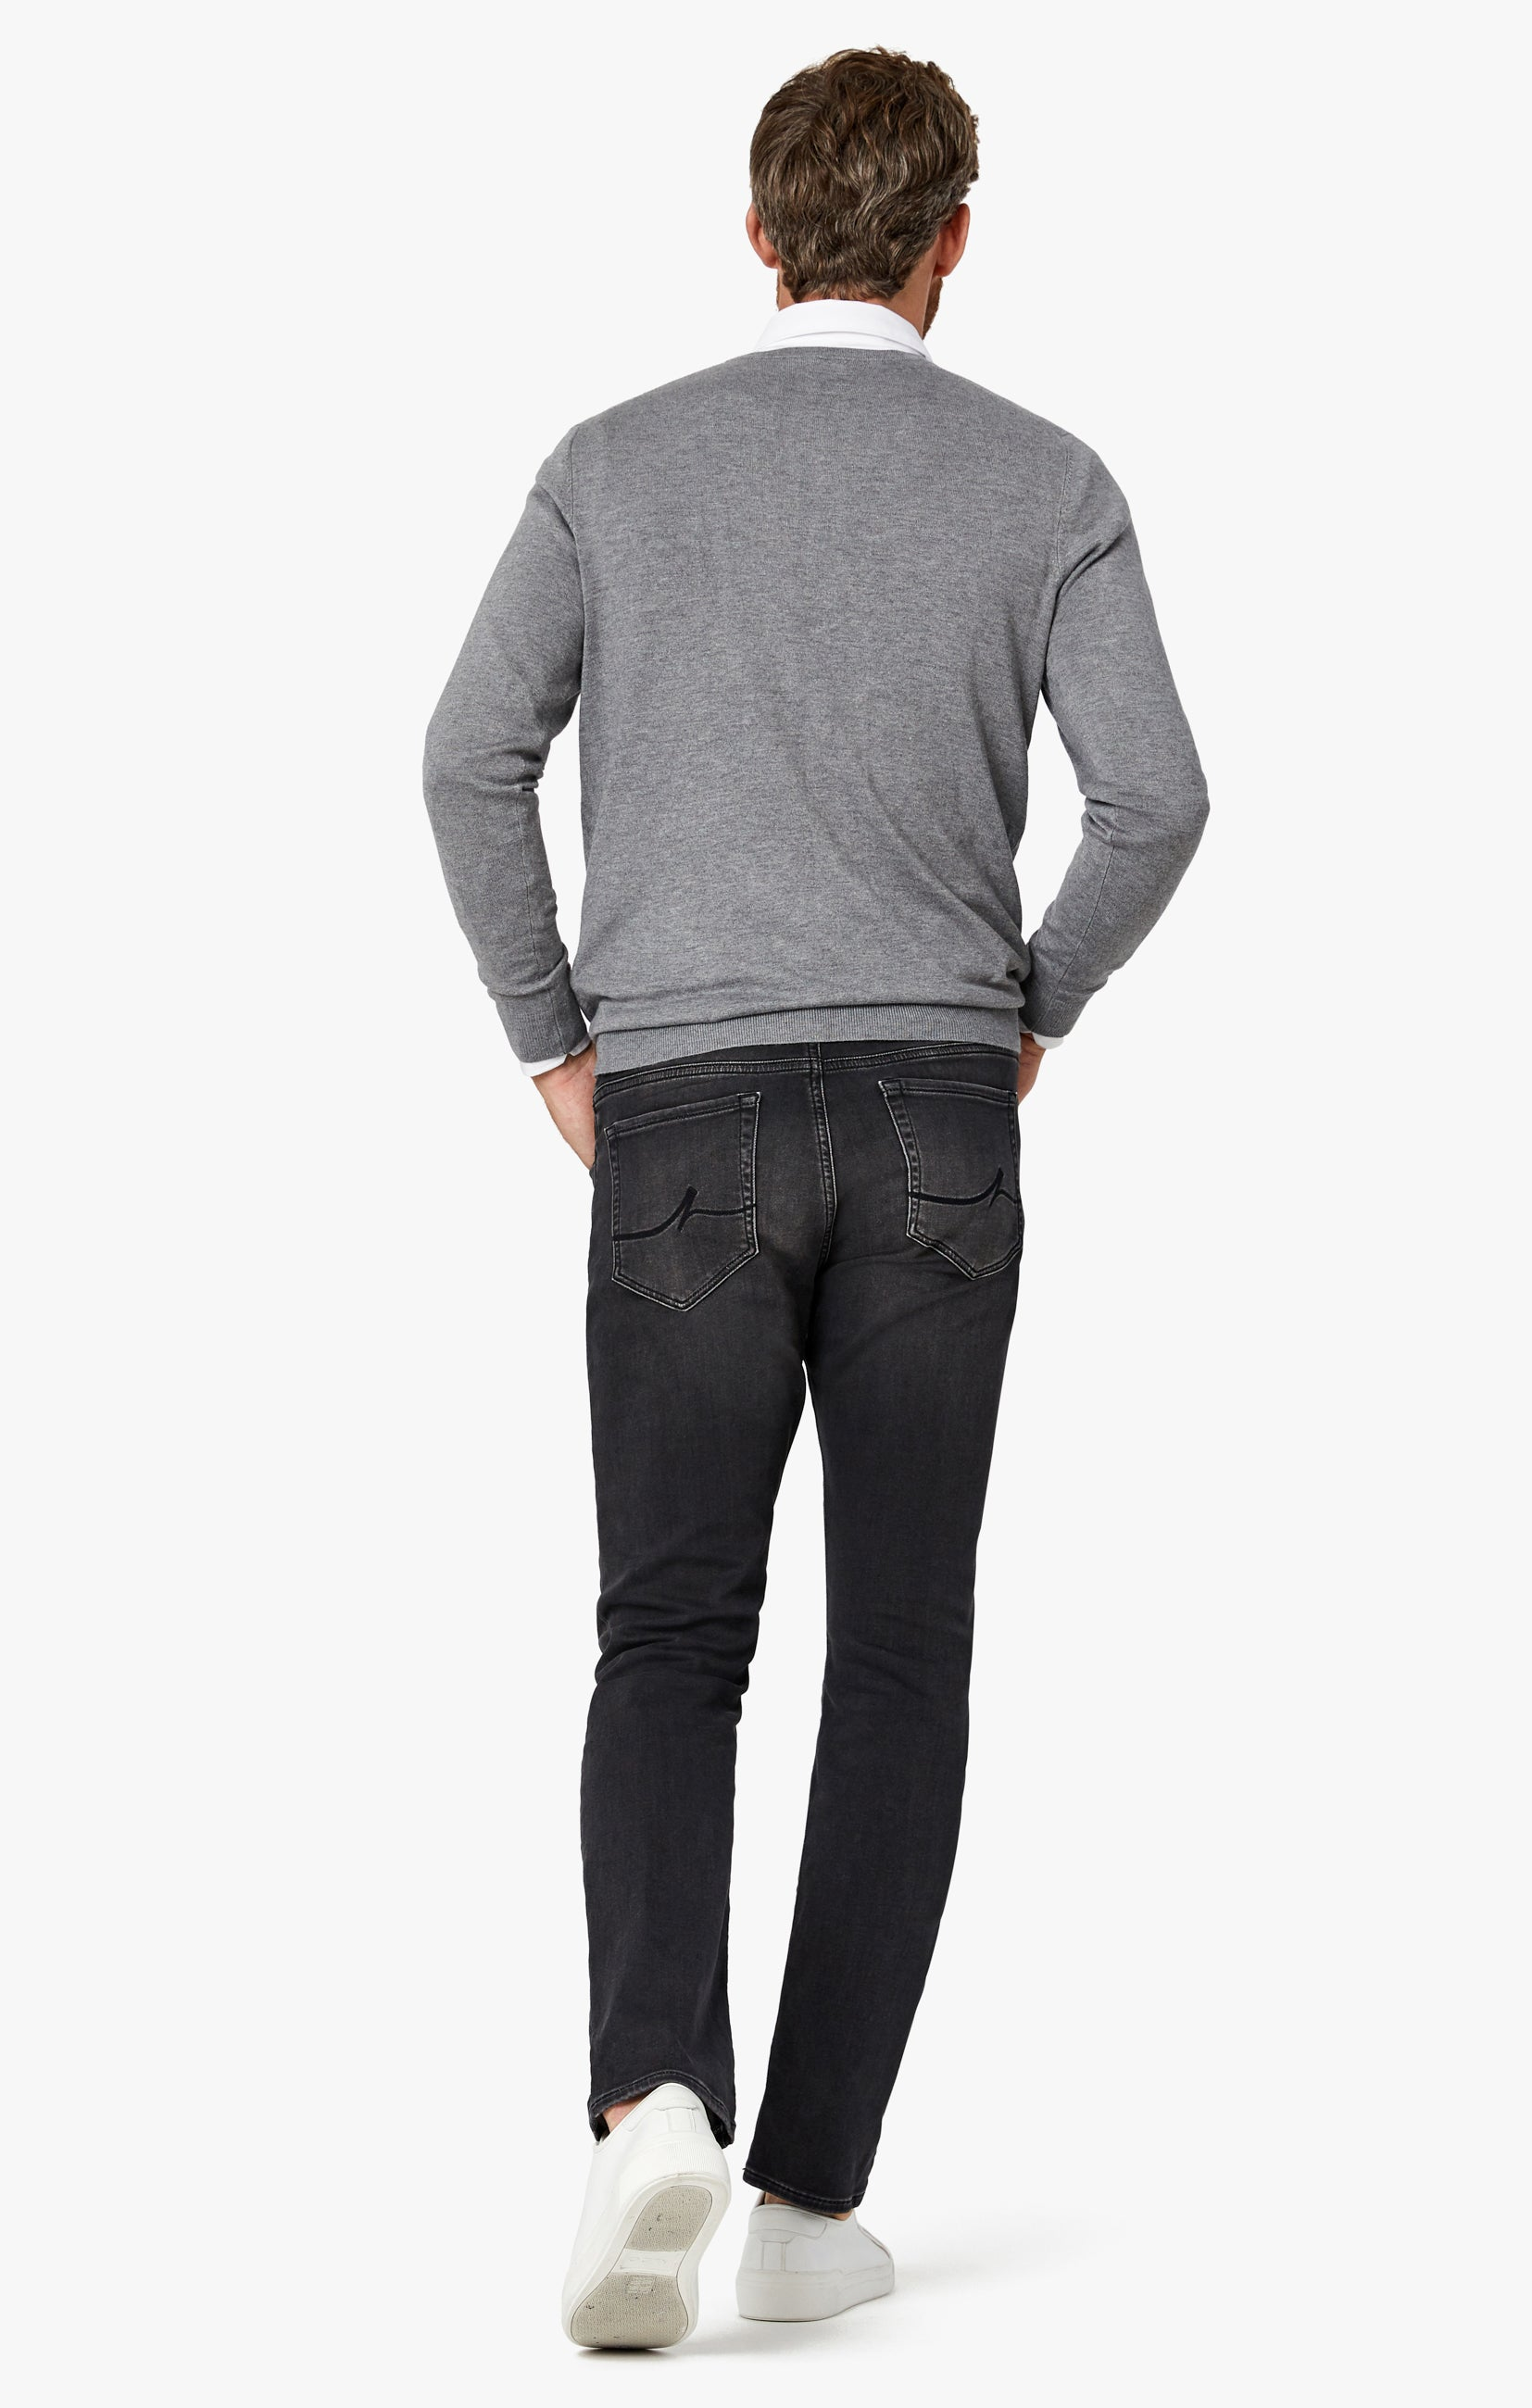 Courage Straight Leg Jeans in Mid Smoke Smart Casual Image 4